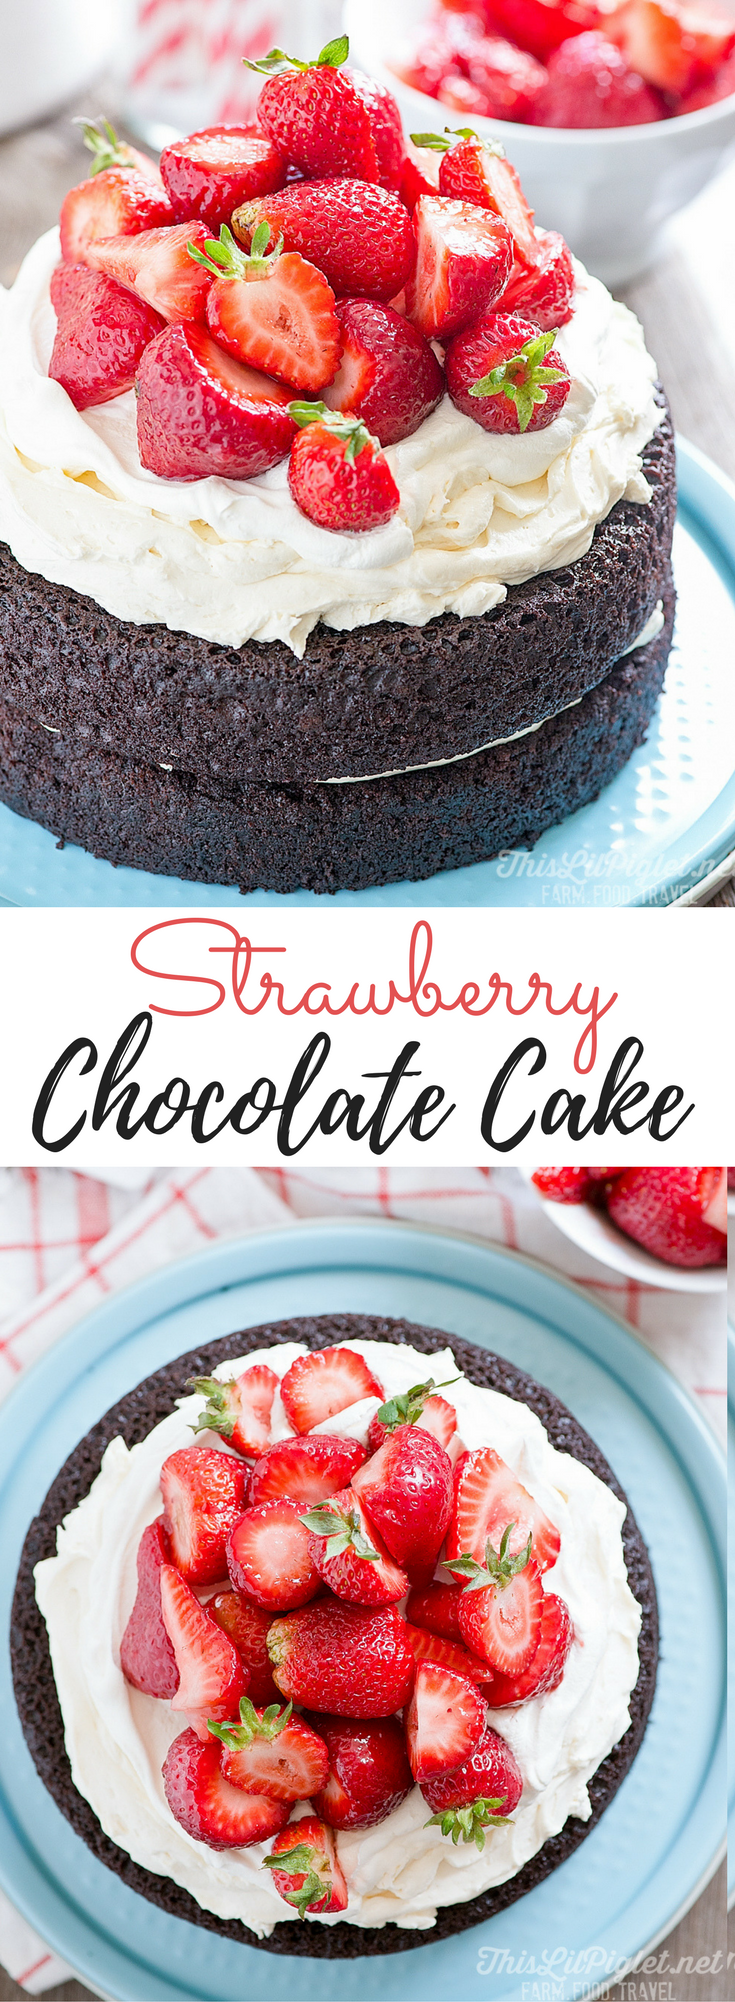 No Fuss Layered Strawberry Chocolate Cake // thislilpiglet.net